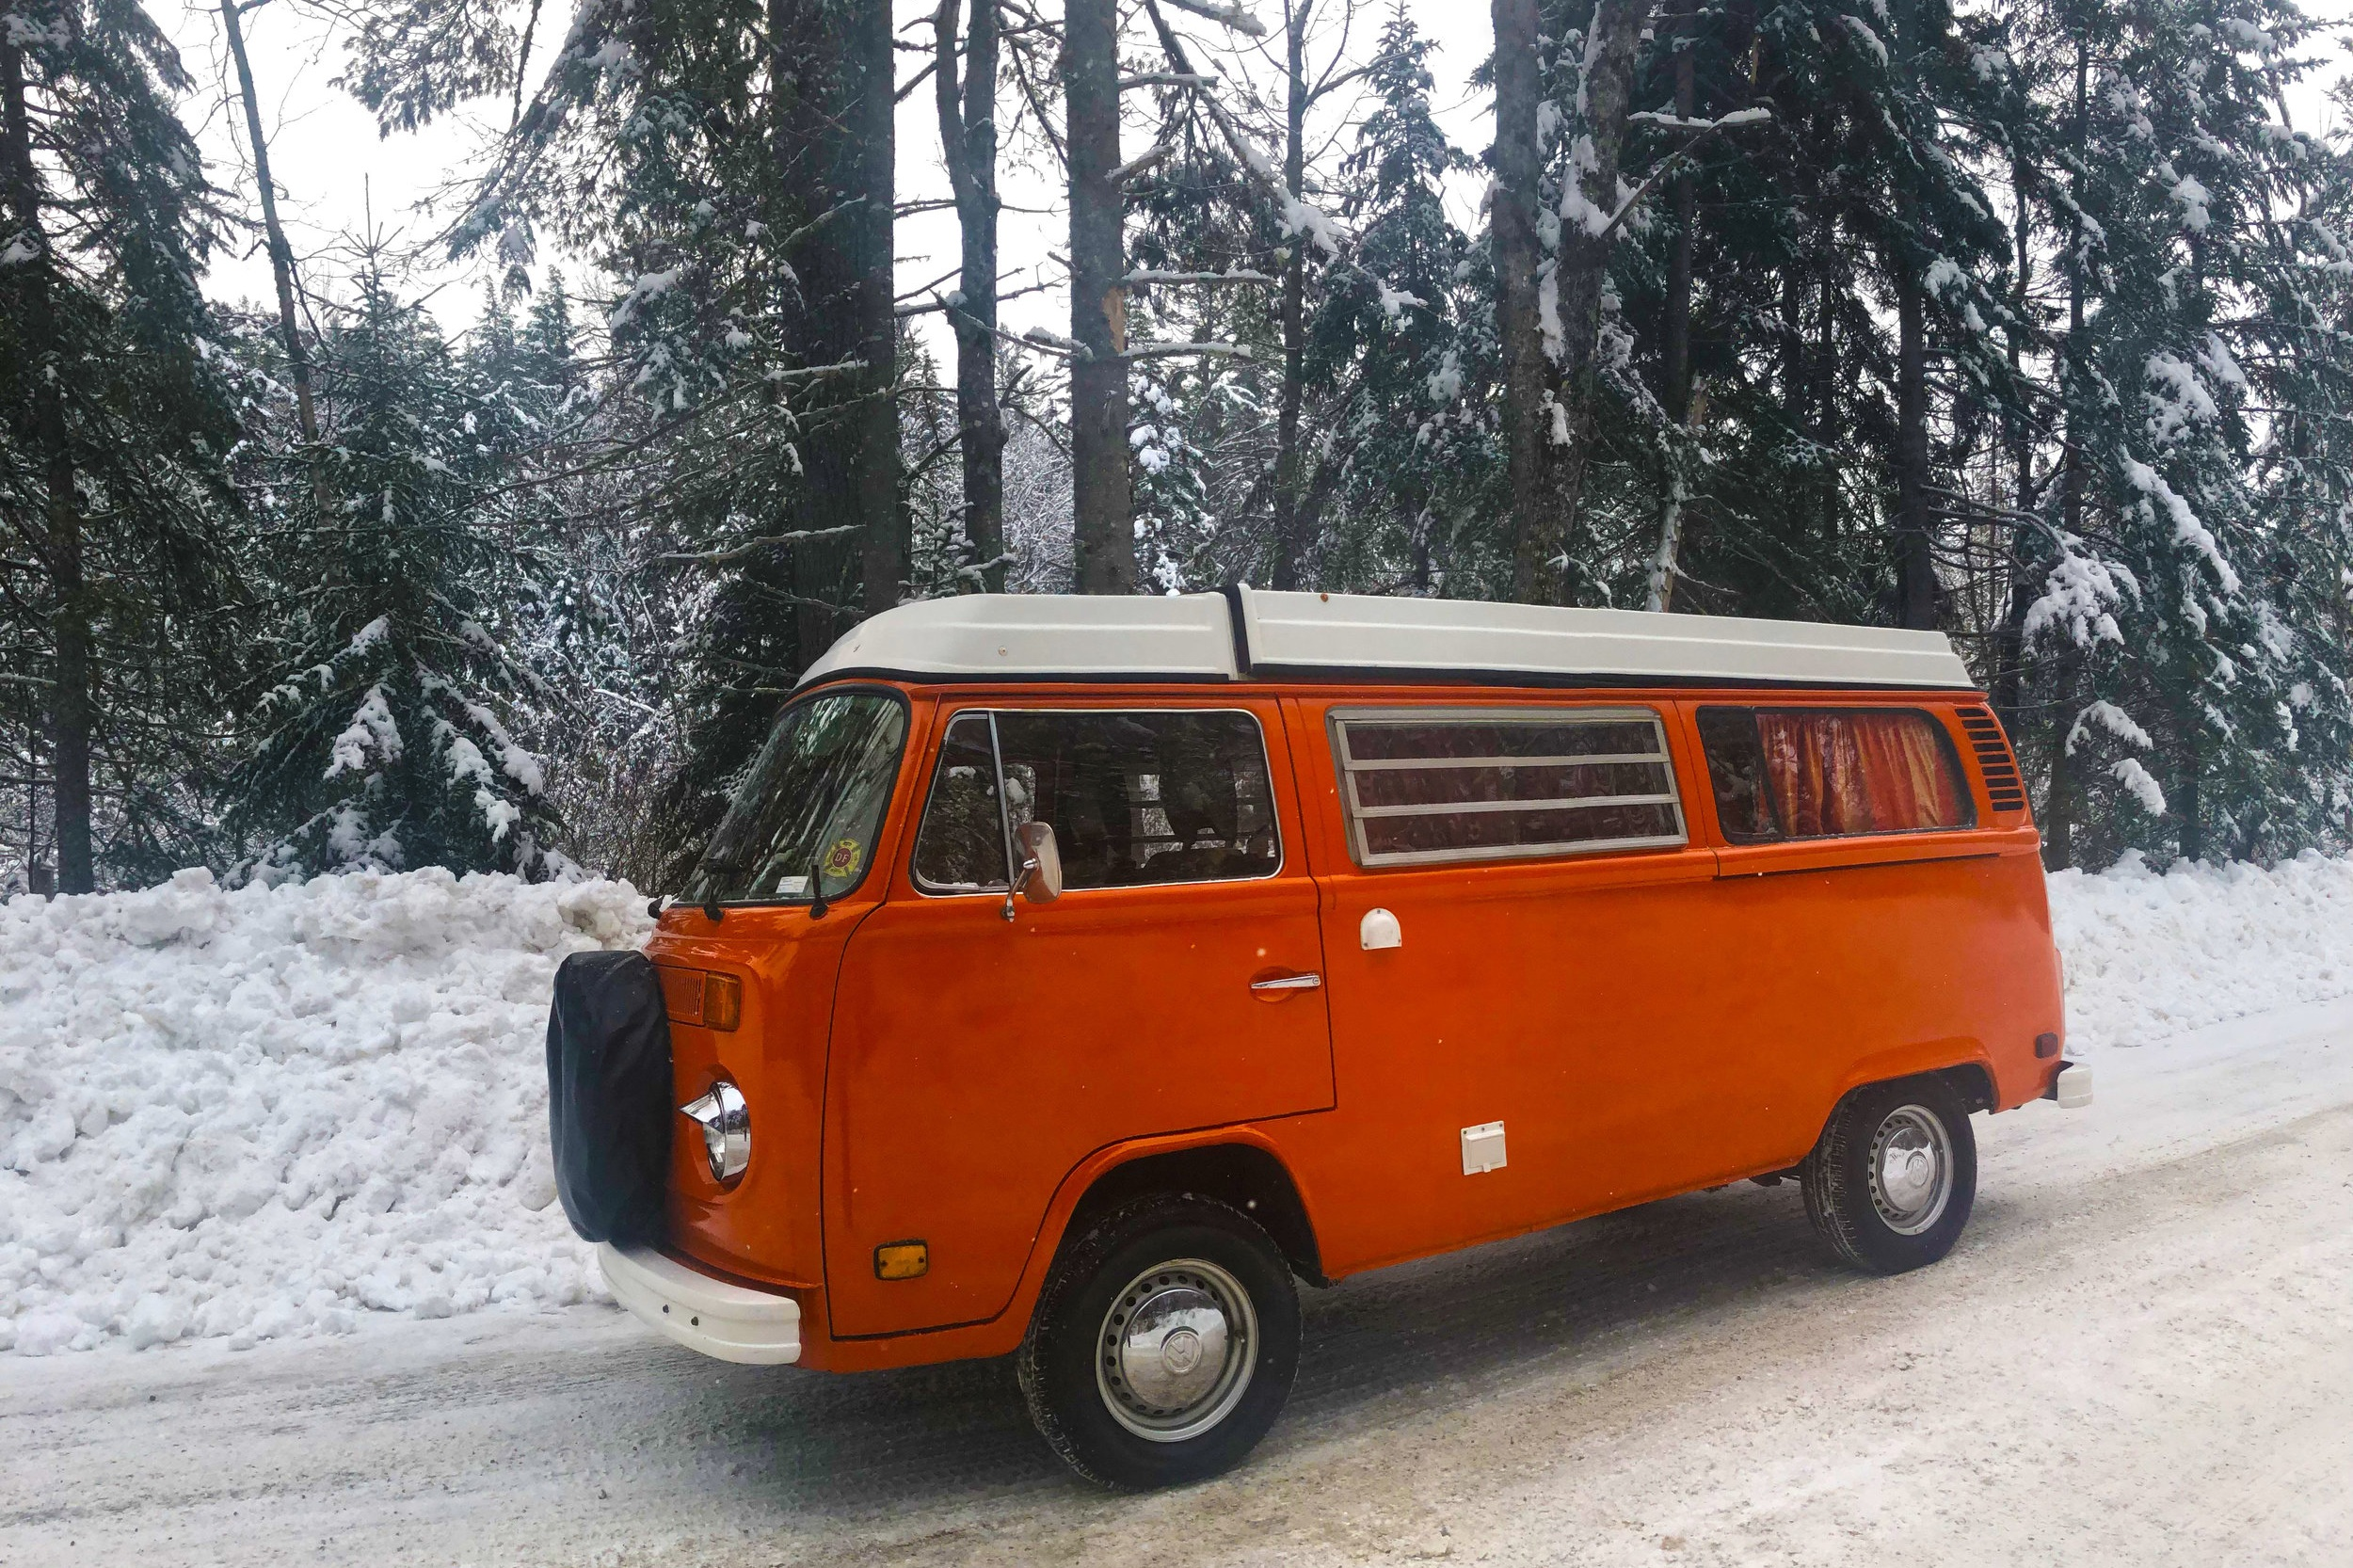 1975 Volkswagen Westfalia - Our latest addition! Your guests will be eager to enjoy this iconic time capsule.